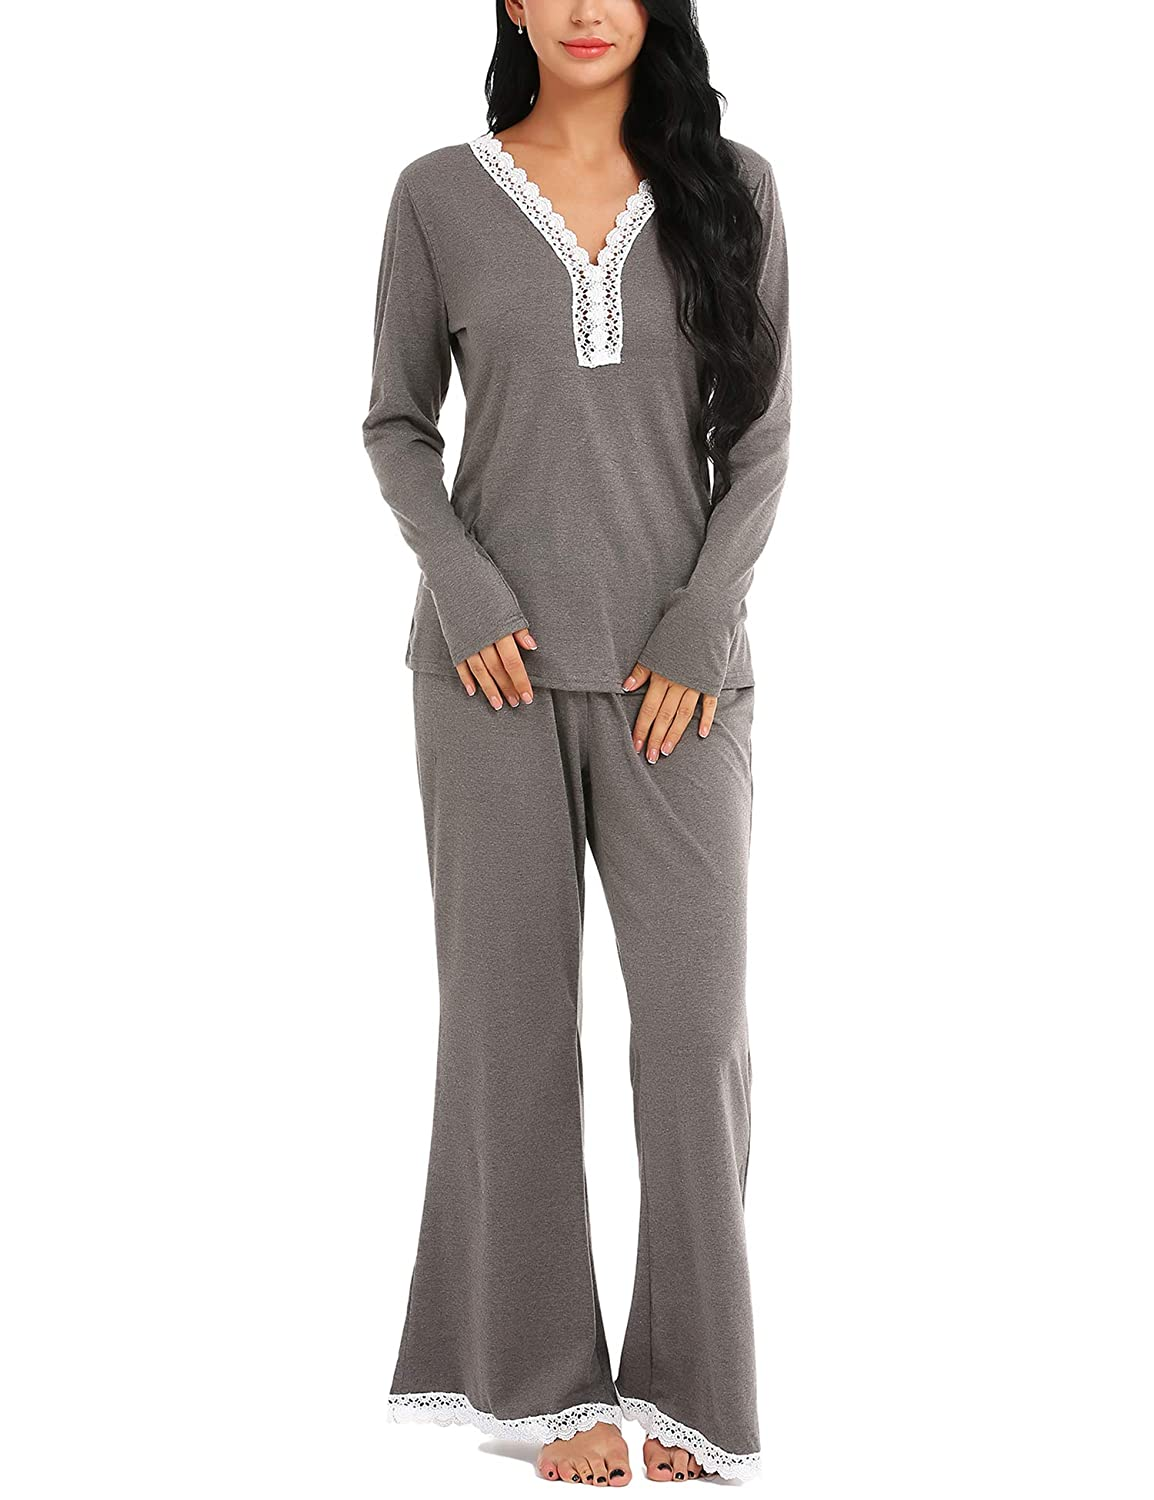 ARANEE Pajamas Women s Long Sleeve Sleepwear Soft Pj Set at Amazon Women s  Clothing store  0141af06a